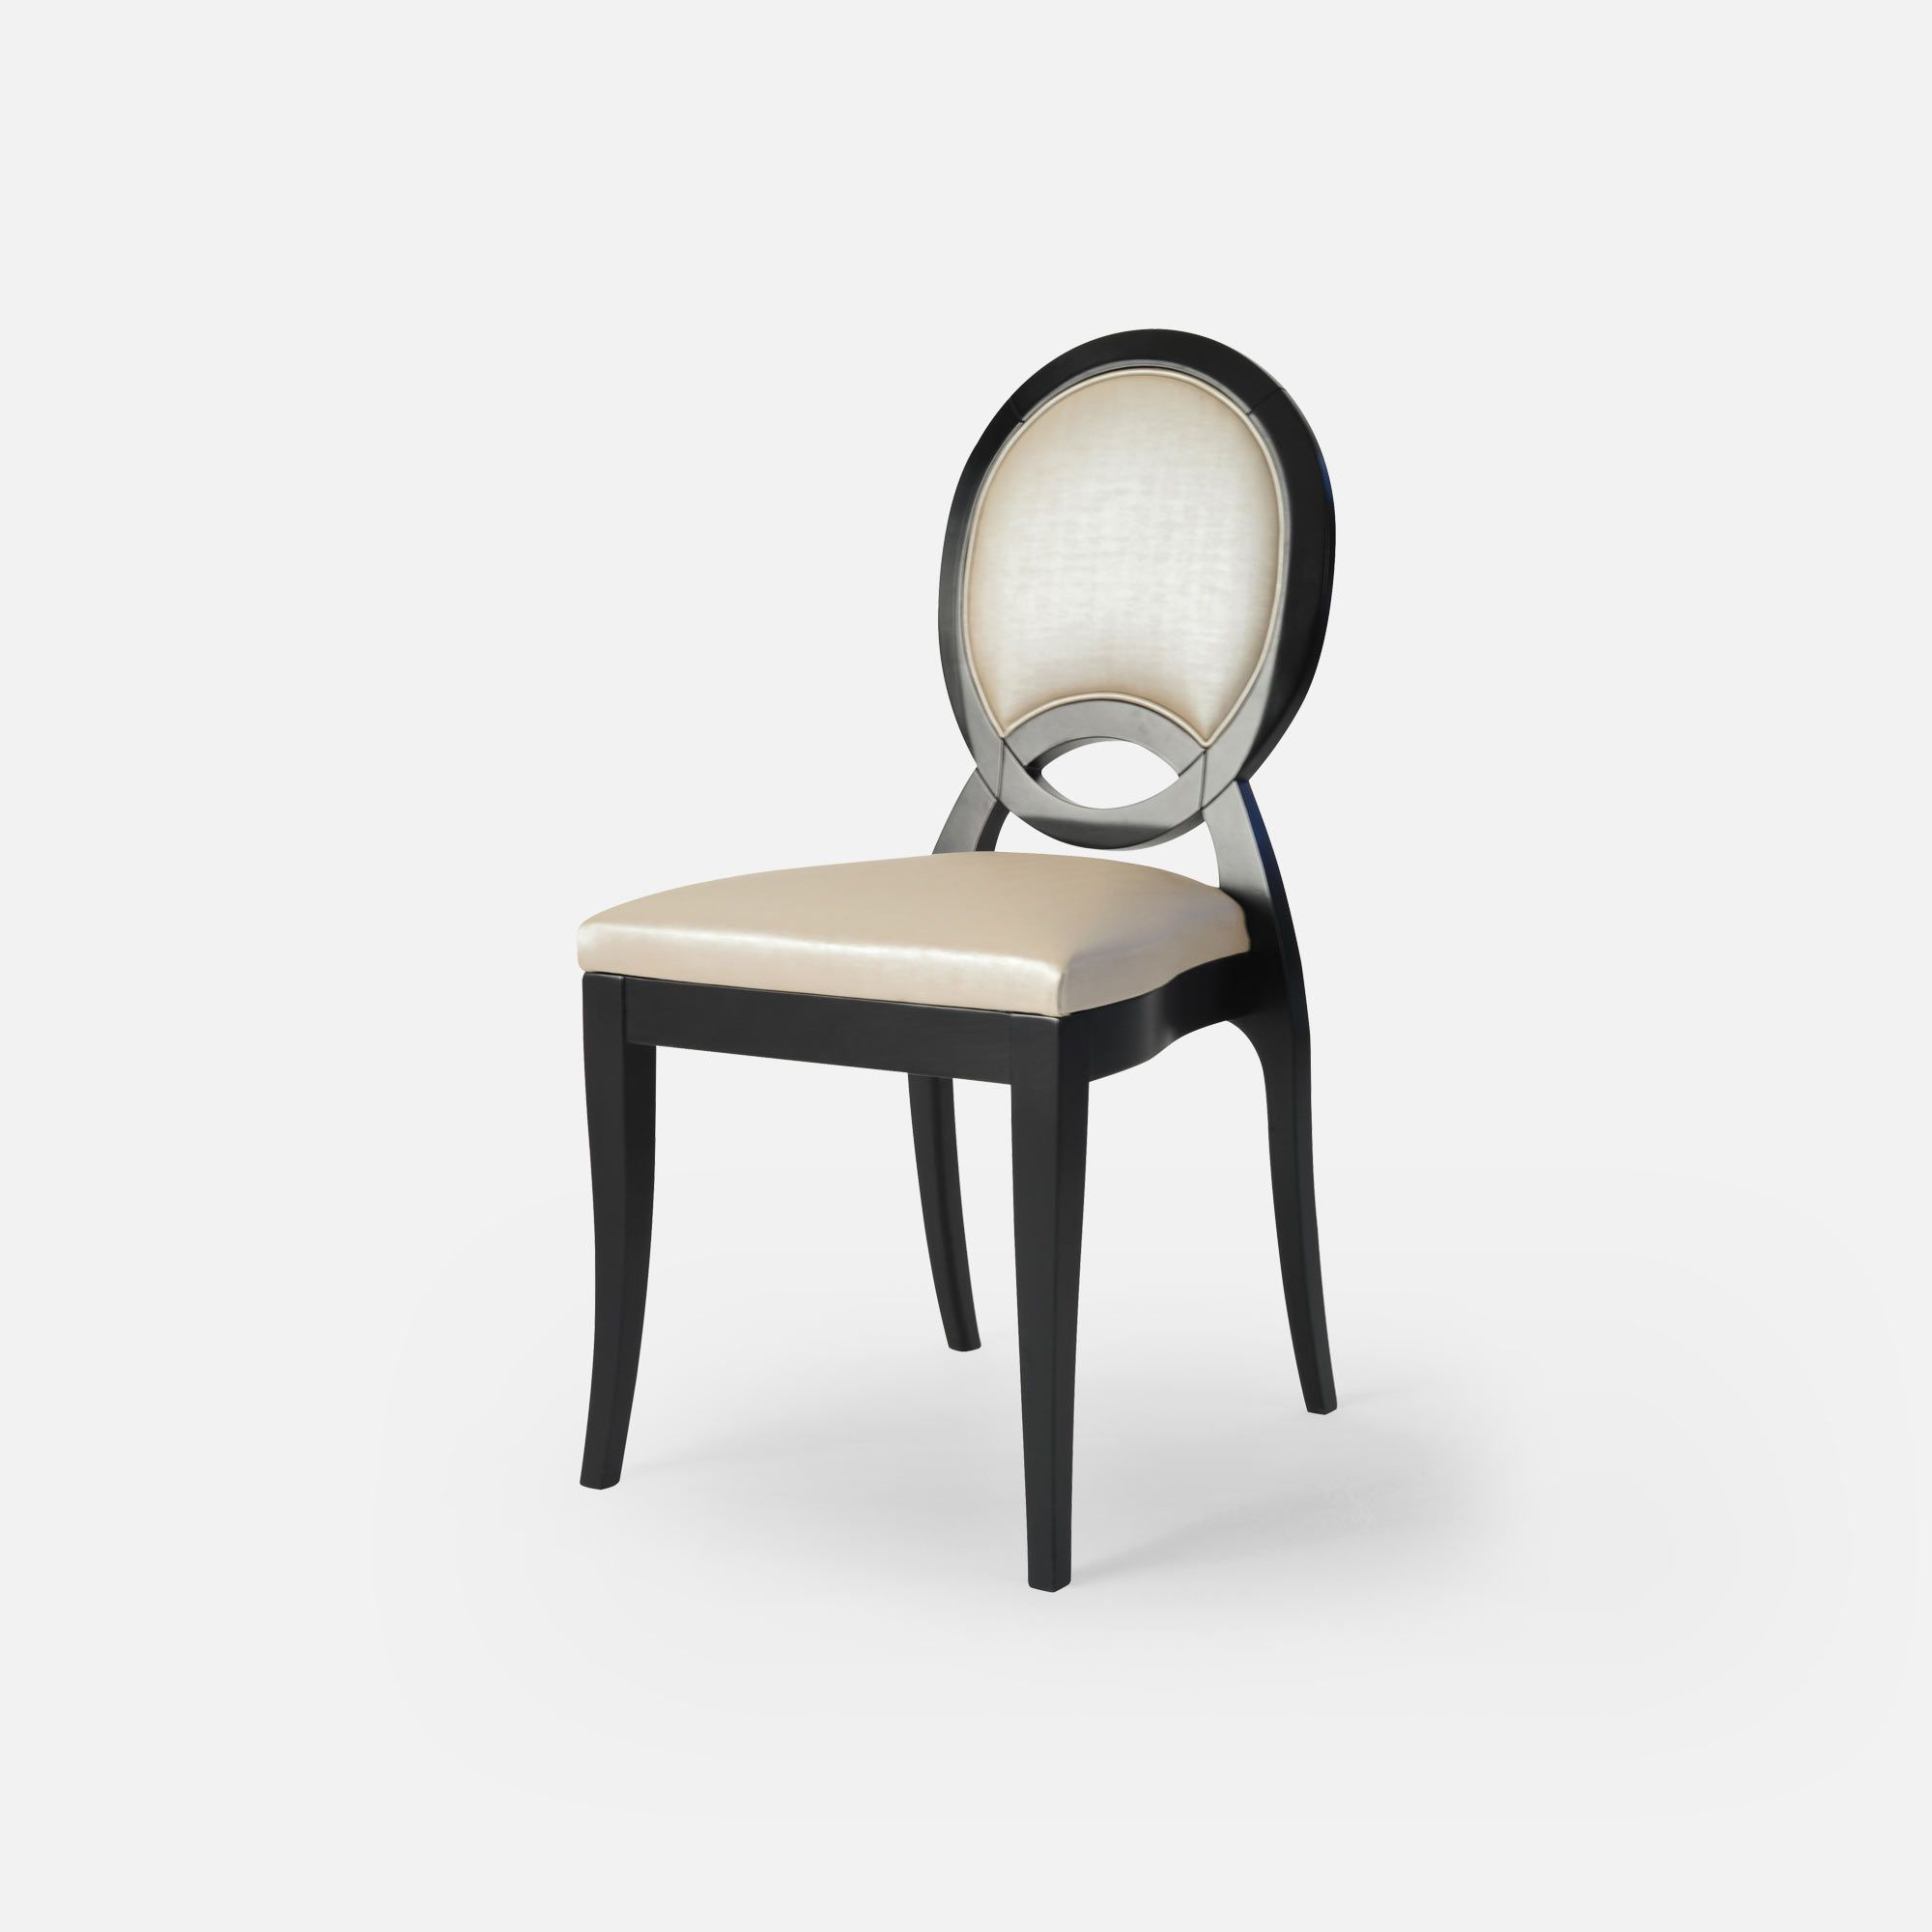 chaise m daillon empilable olympe pour chr collinet. Black Bedroom Furniture Sets. Home Design Ideas